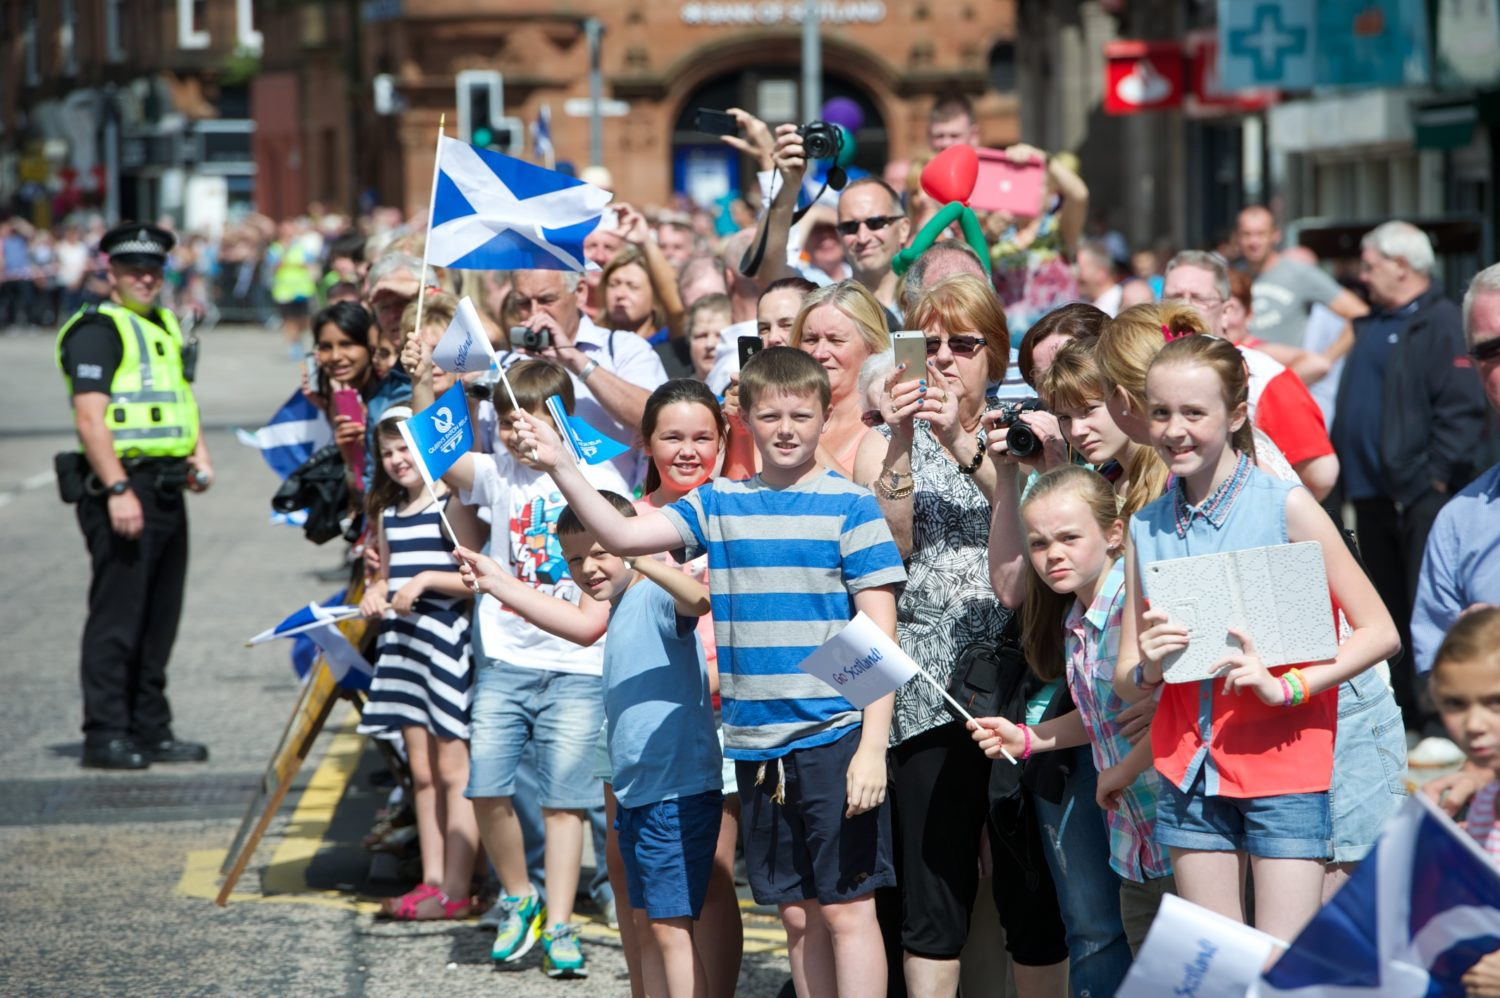 Crowds gather in Renfrew to welcome the baton